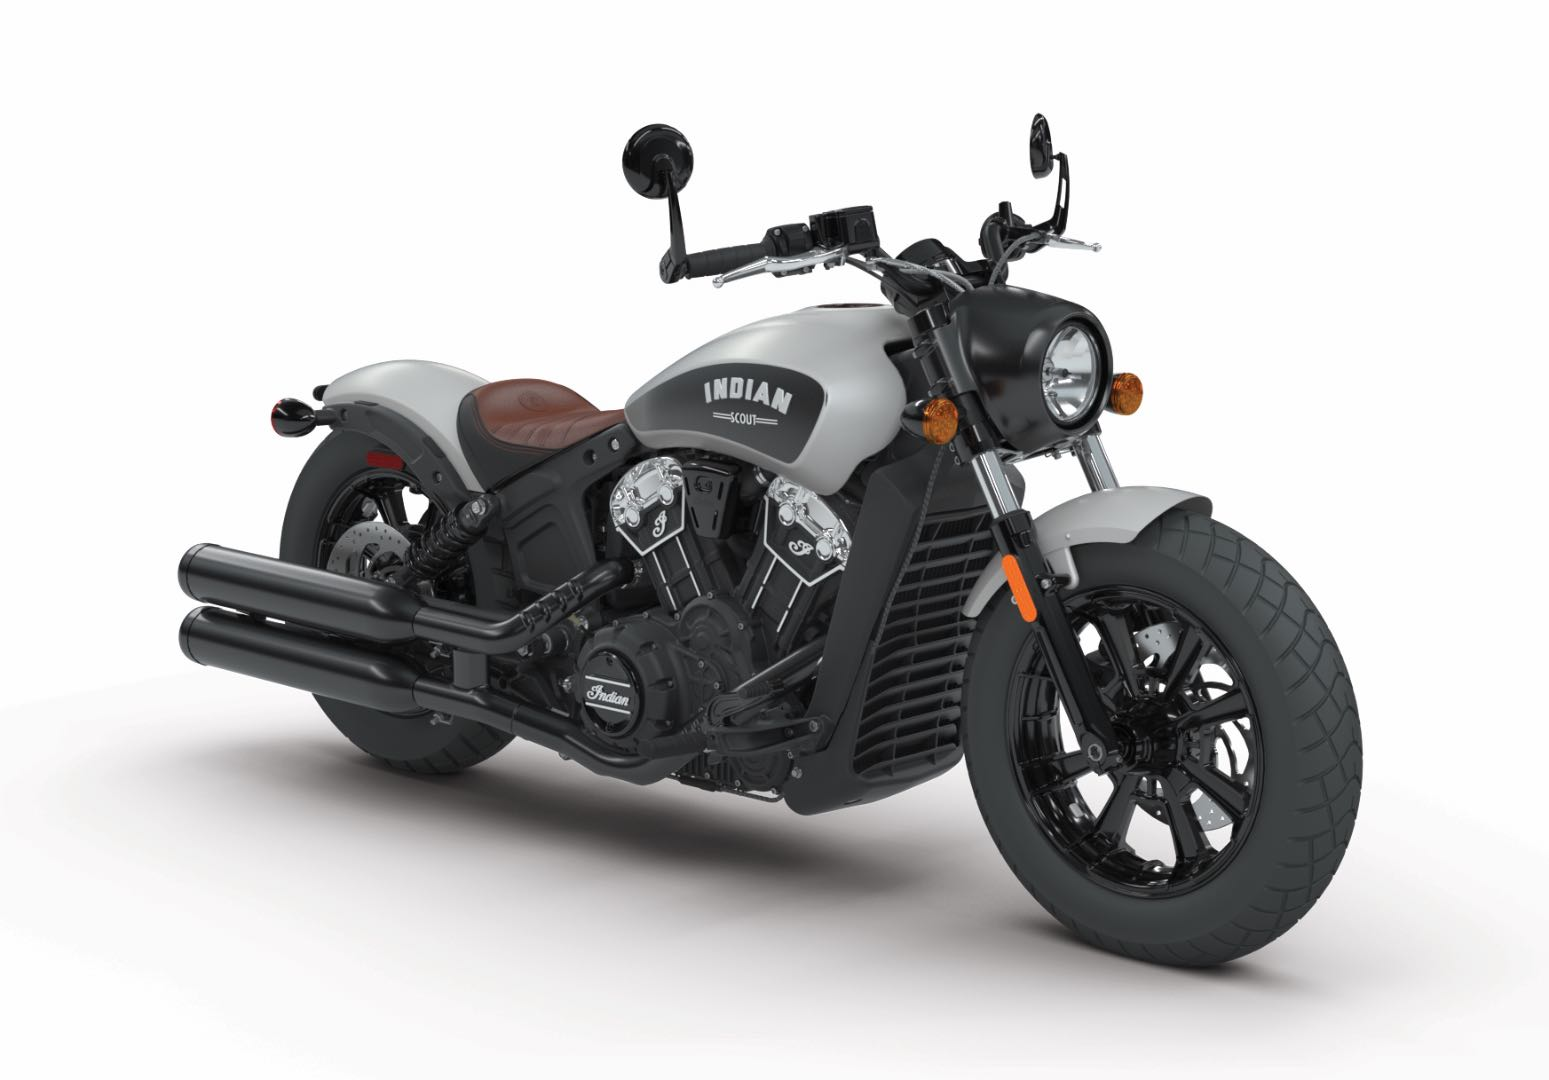 Indian Scout Bobber global launch: Expected price, specs